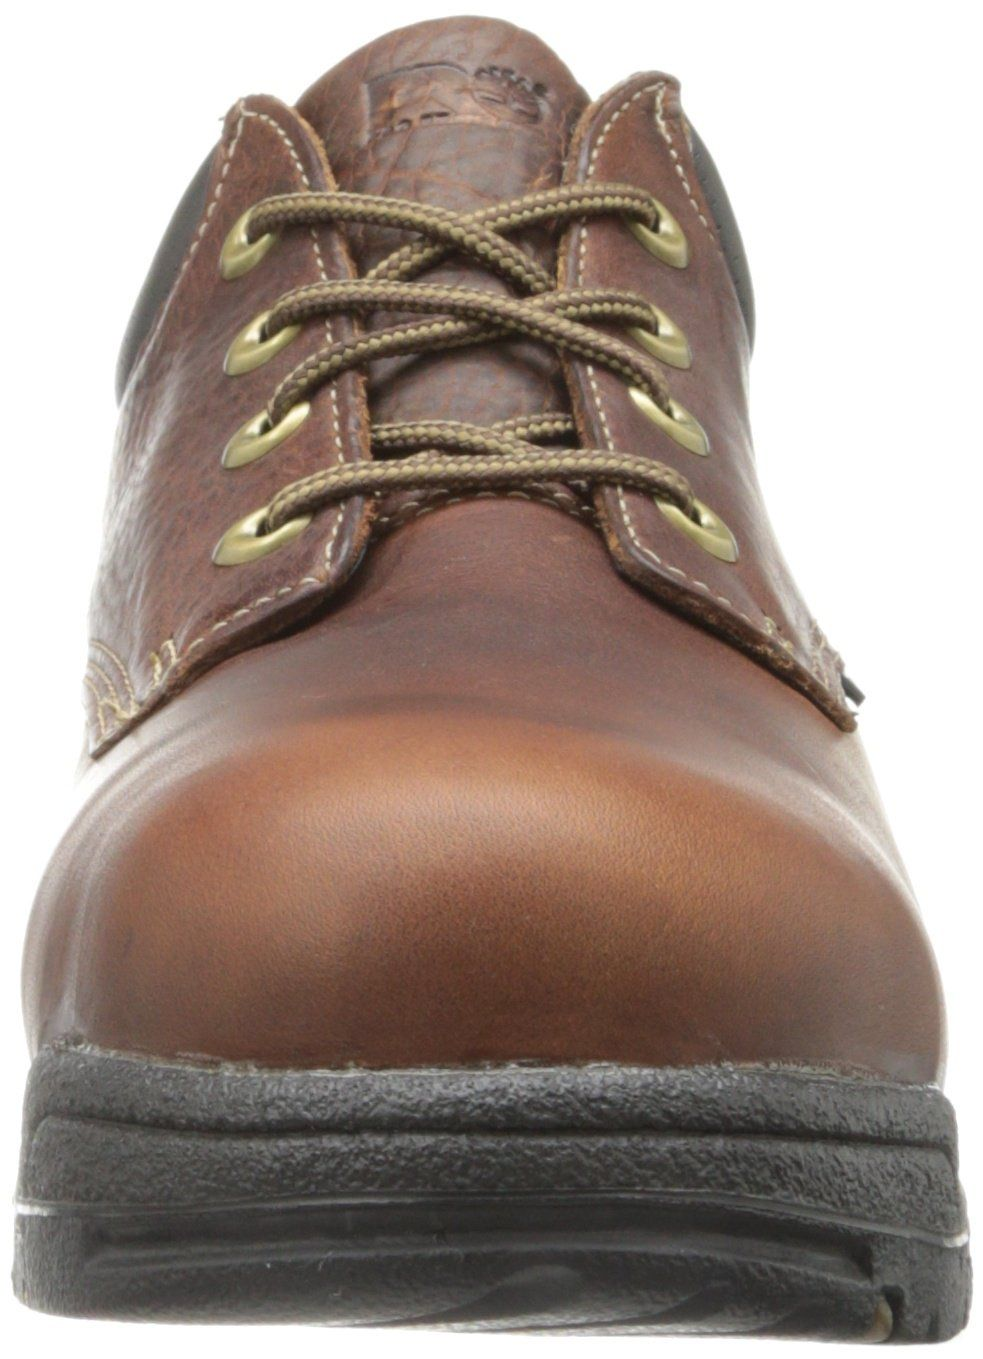 bd897a8e3ea Timberland PRO Mens Titan Safety Toe OxfordHaystack Brown11 M ** Learn more  by visiting the image link. (This is an affiliate link)  #TimberlandStyleShoes